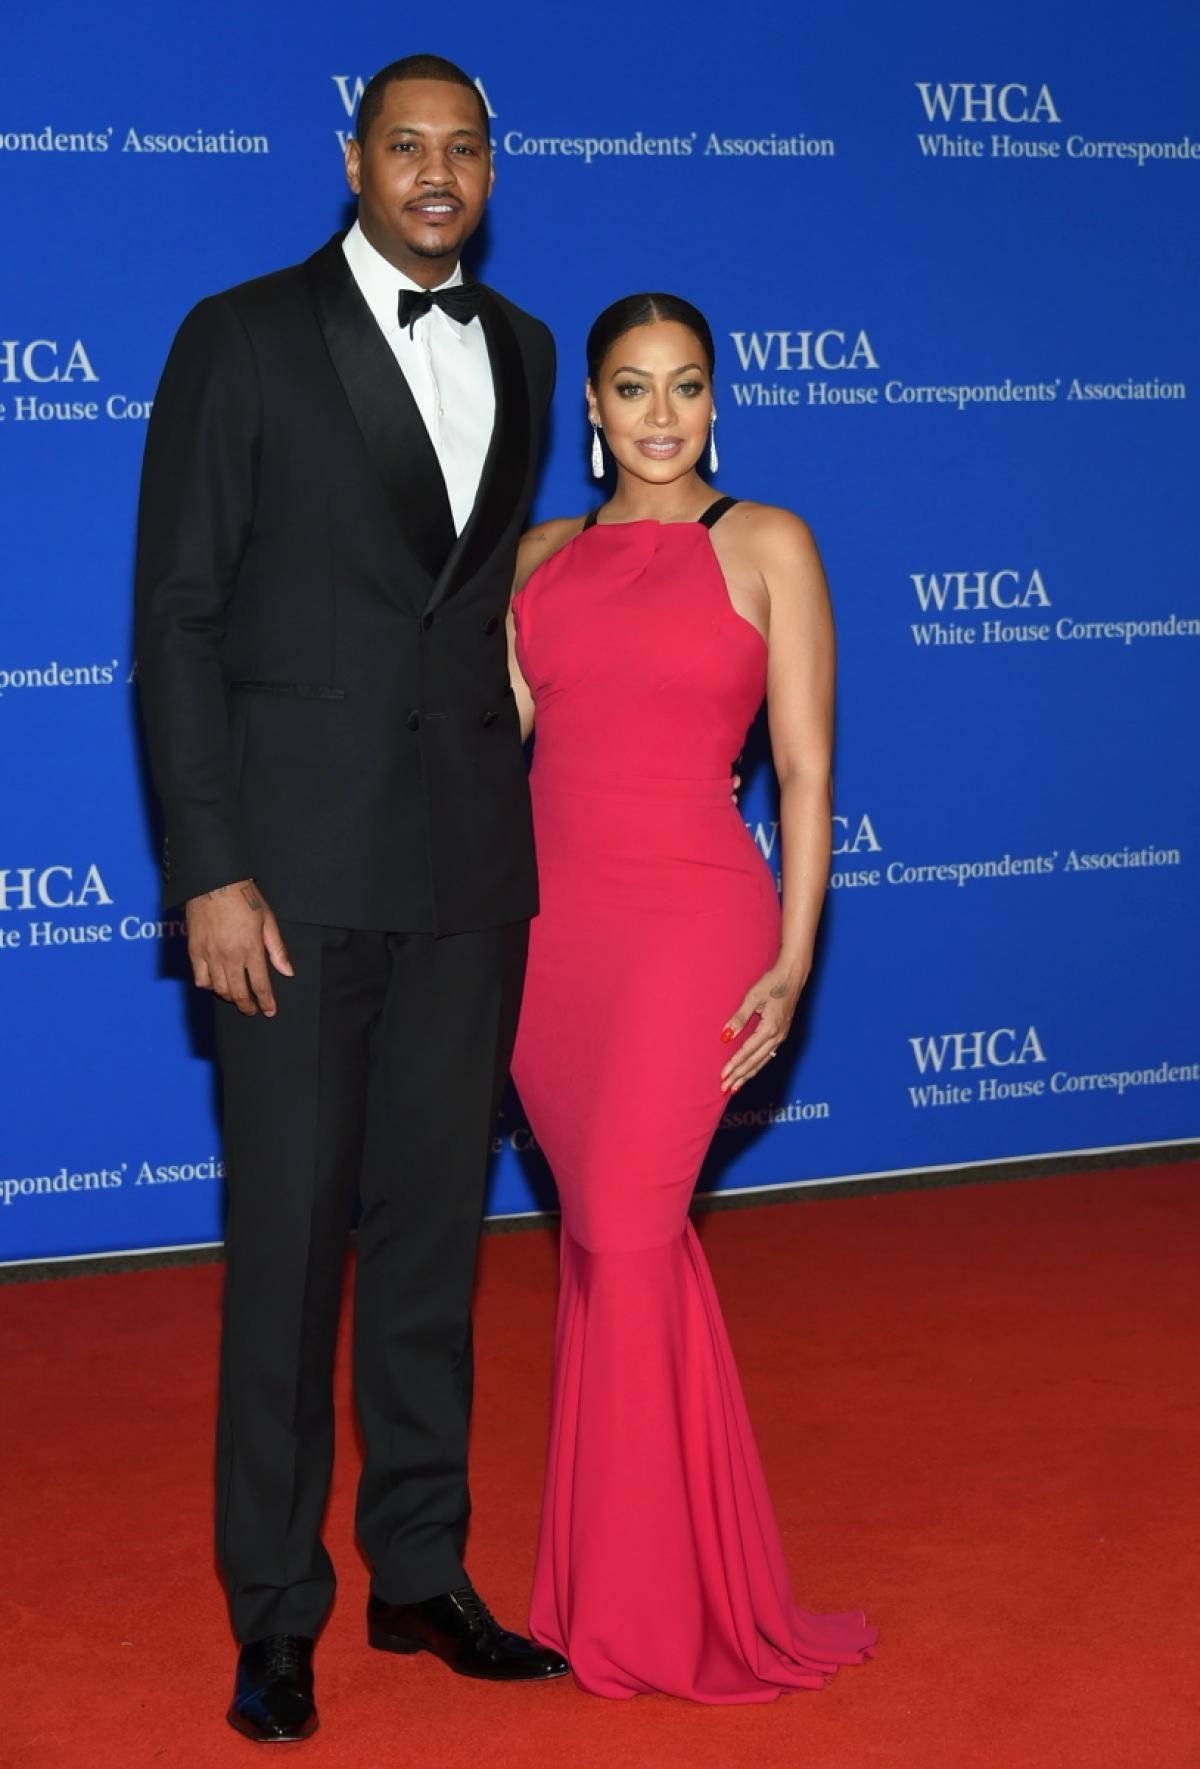 Carmelo Anthony left and his stunning wife La La Anthony arrived